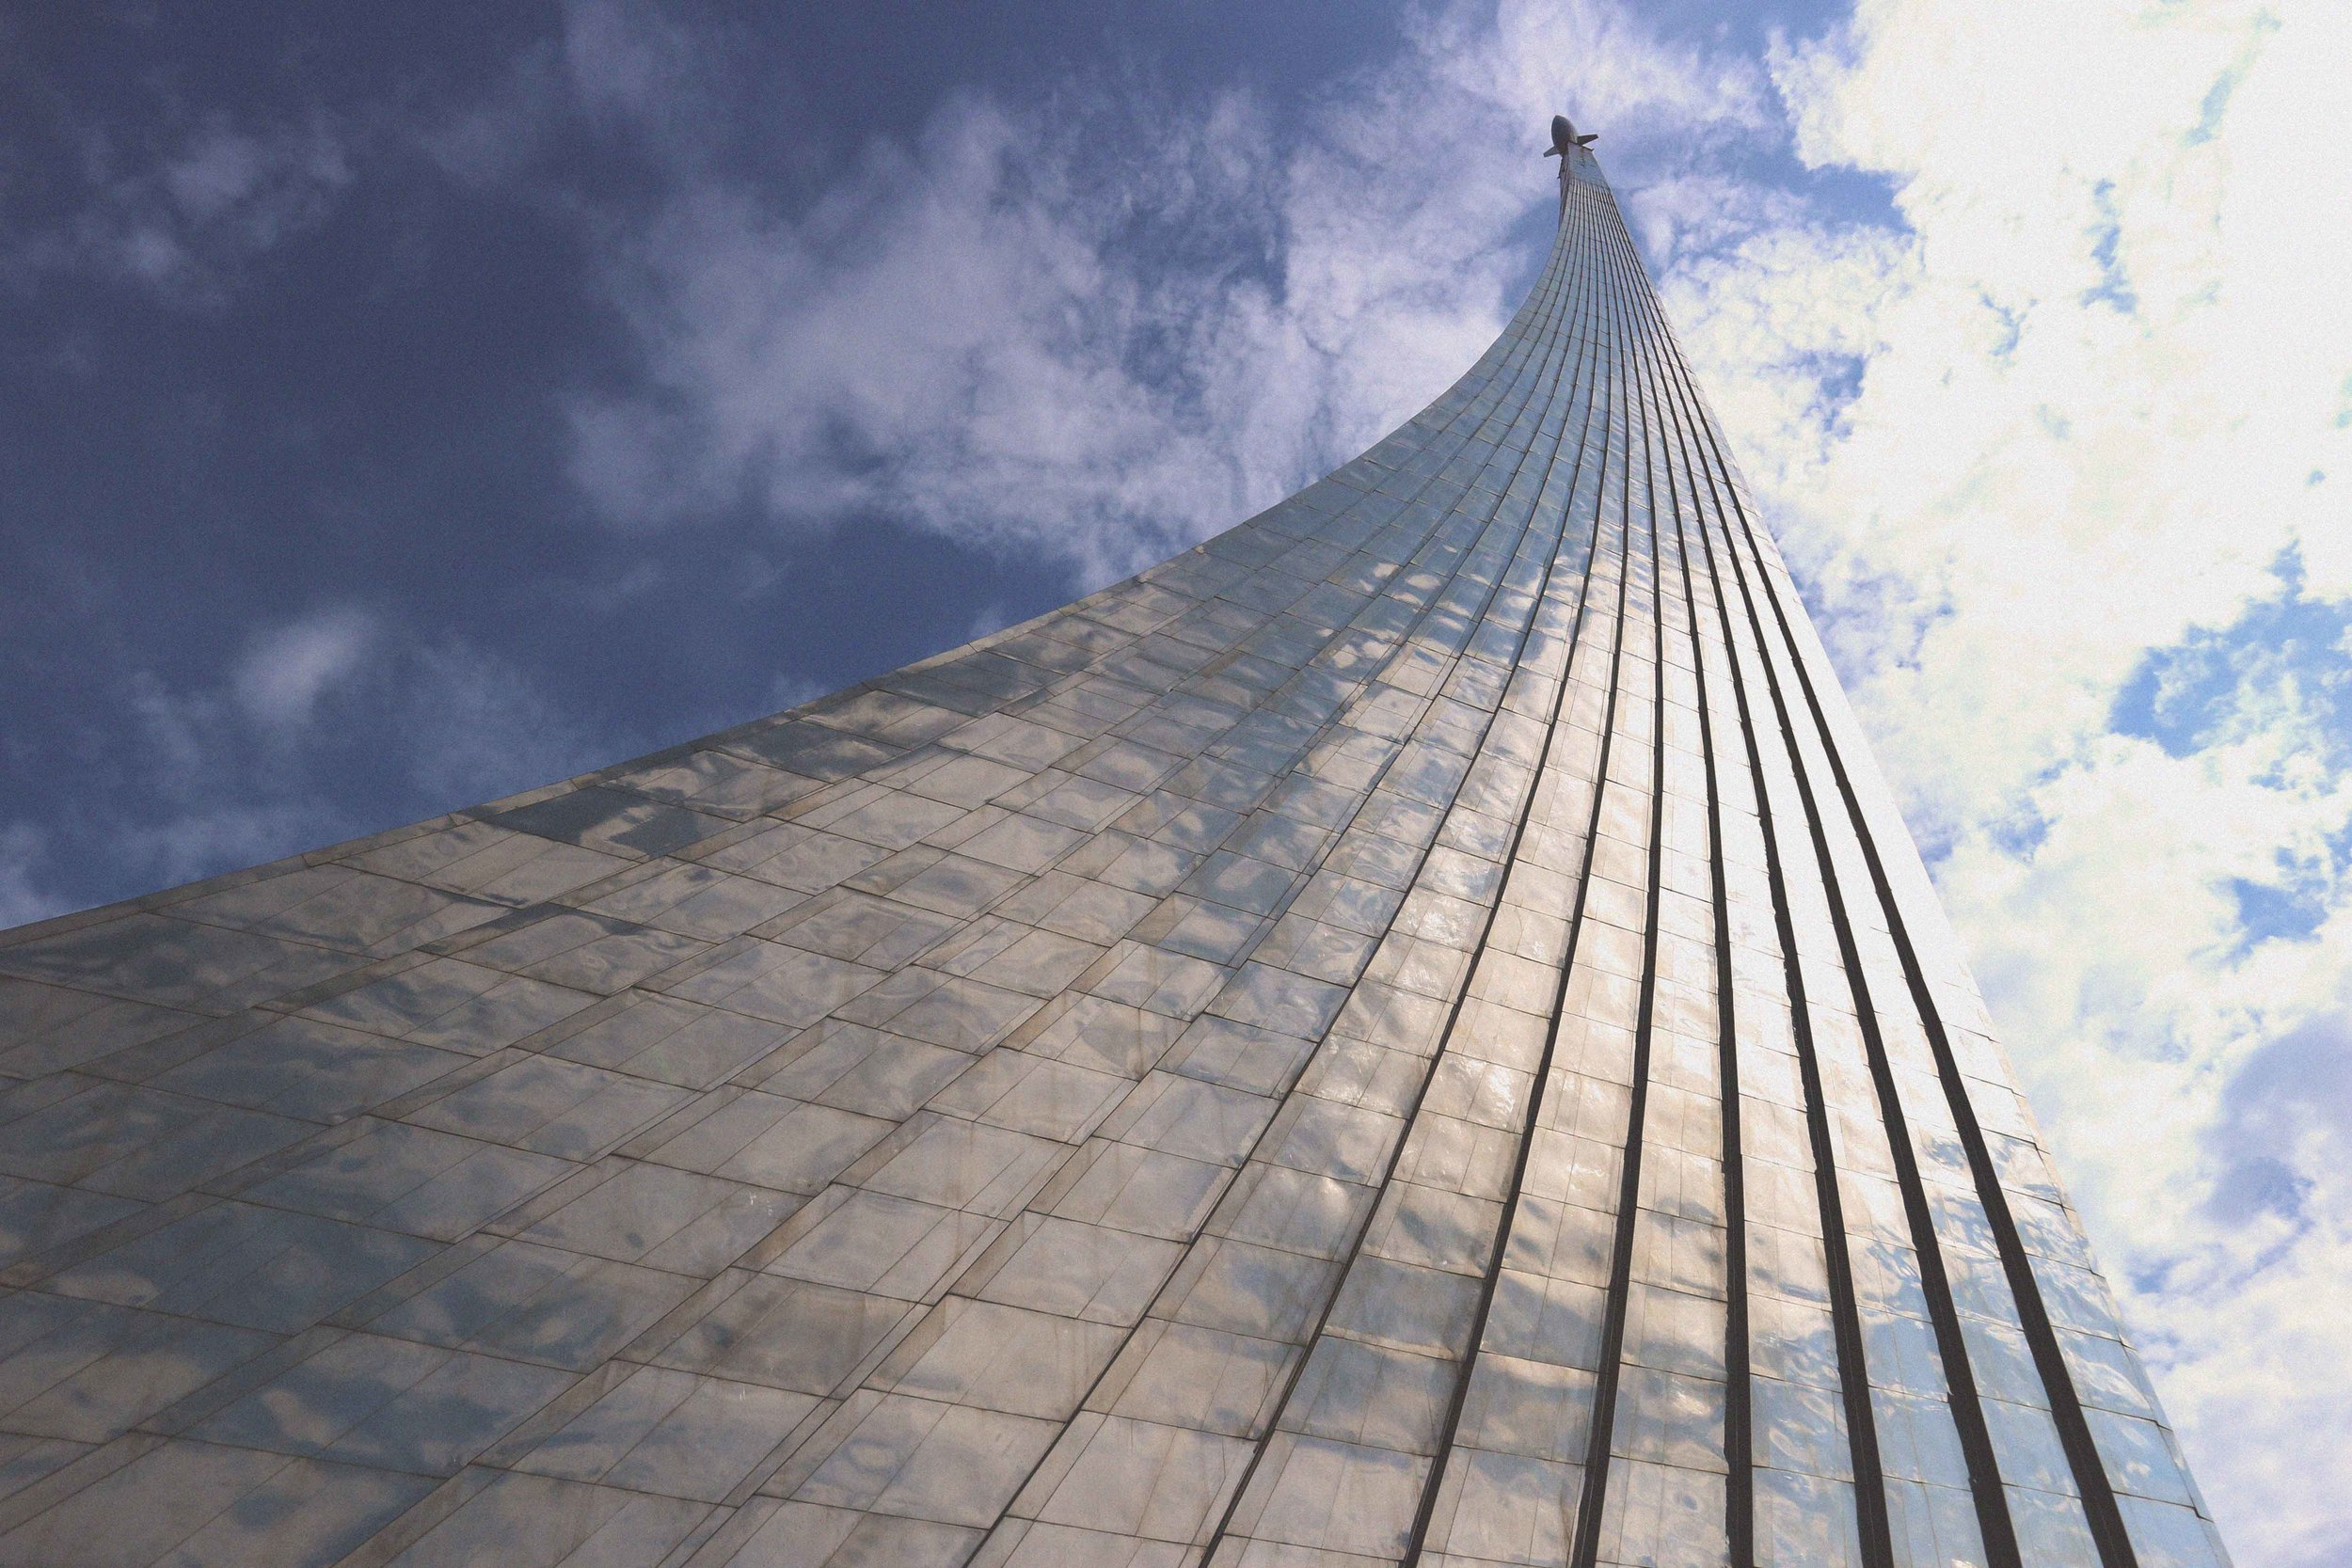 Monument to the conquerors of space in Moscow, Russia